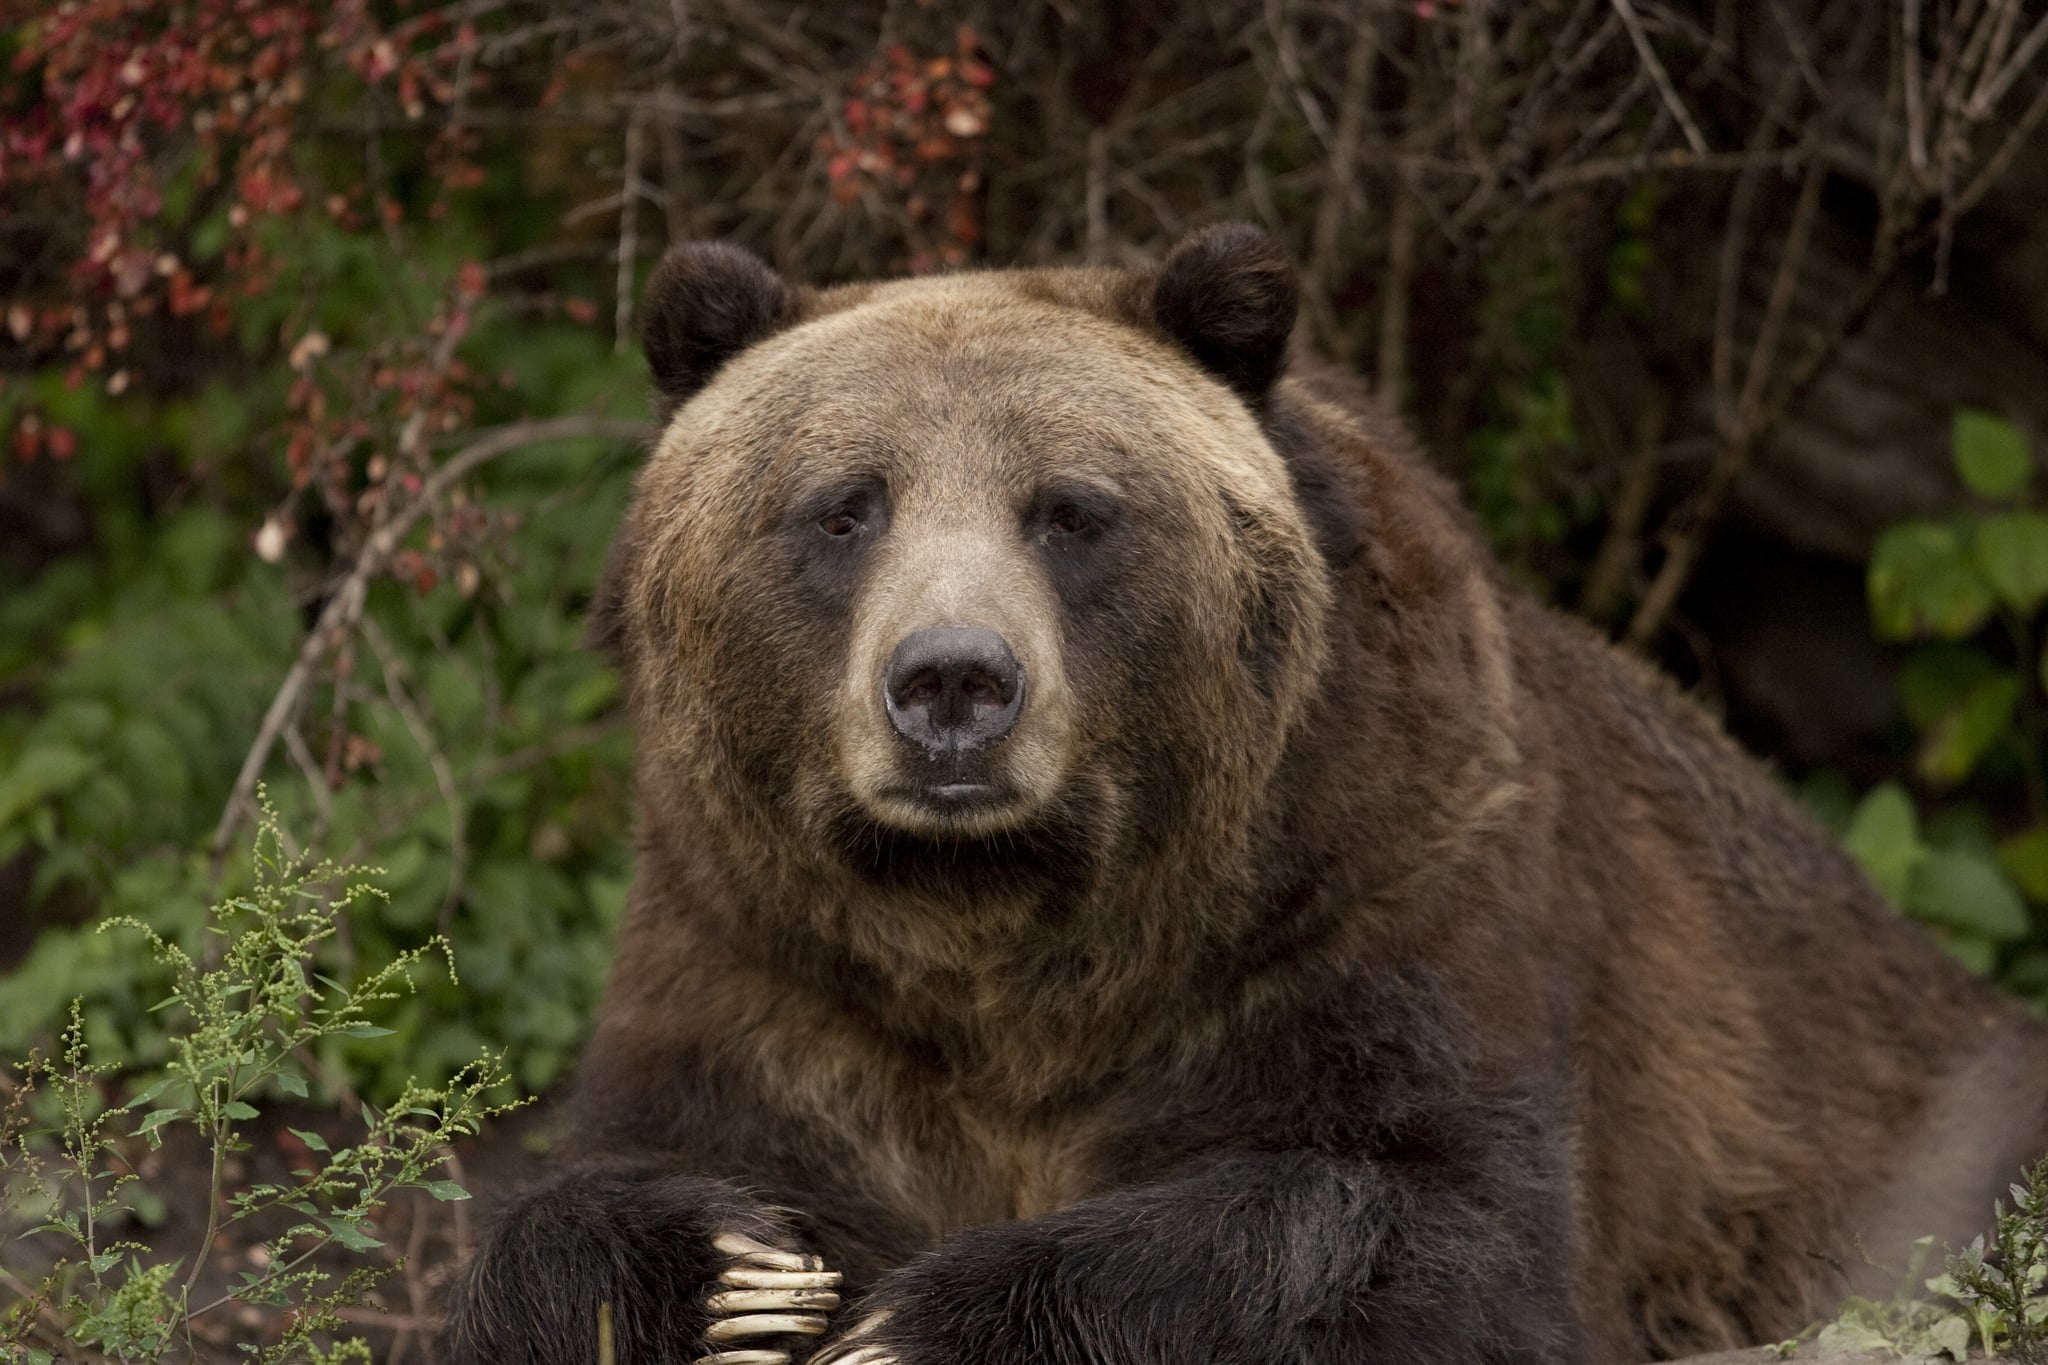 Climate change makes grizzly bears go vegetarian